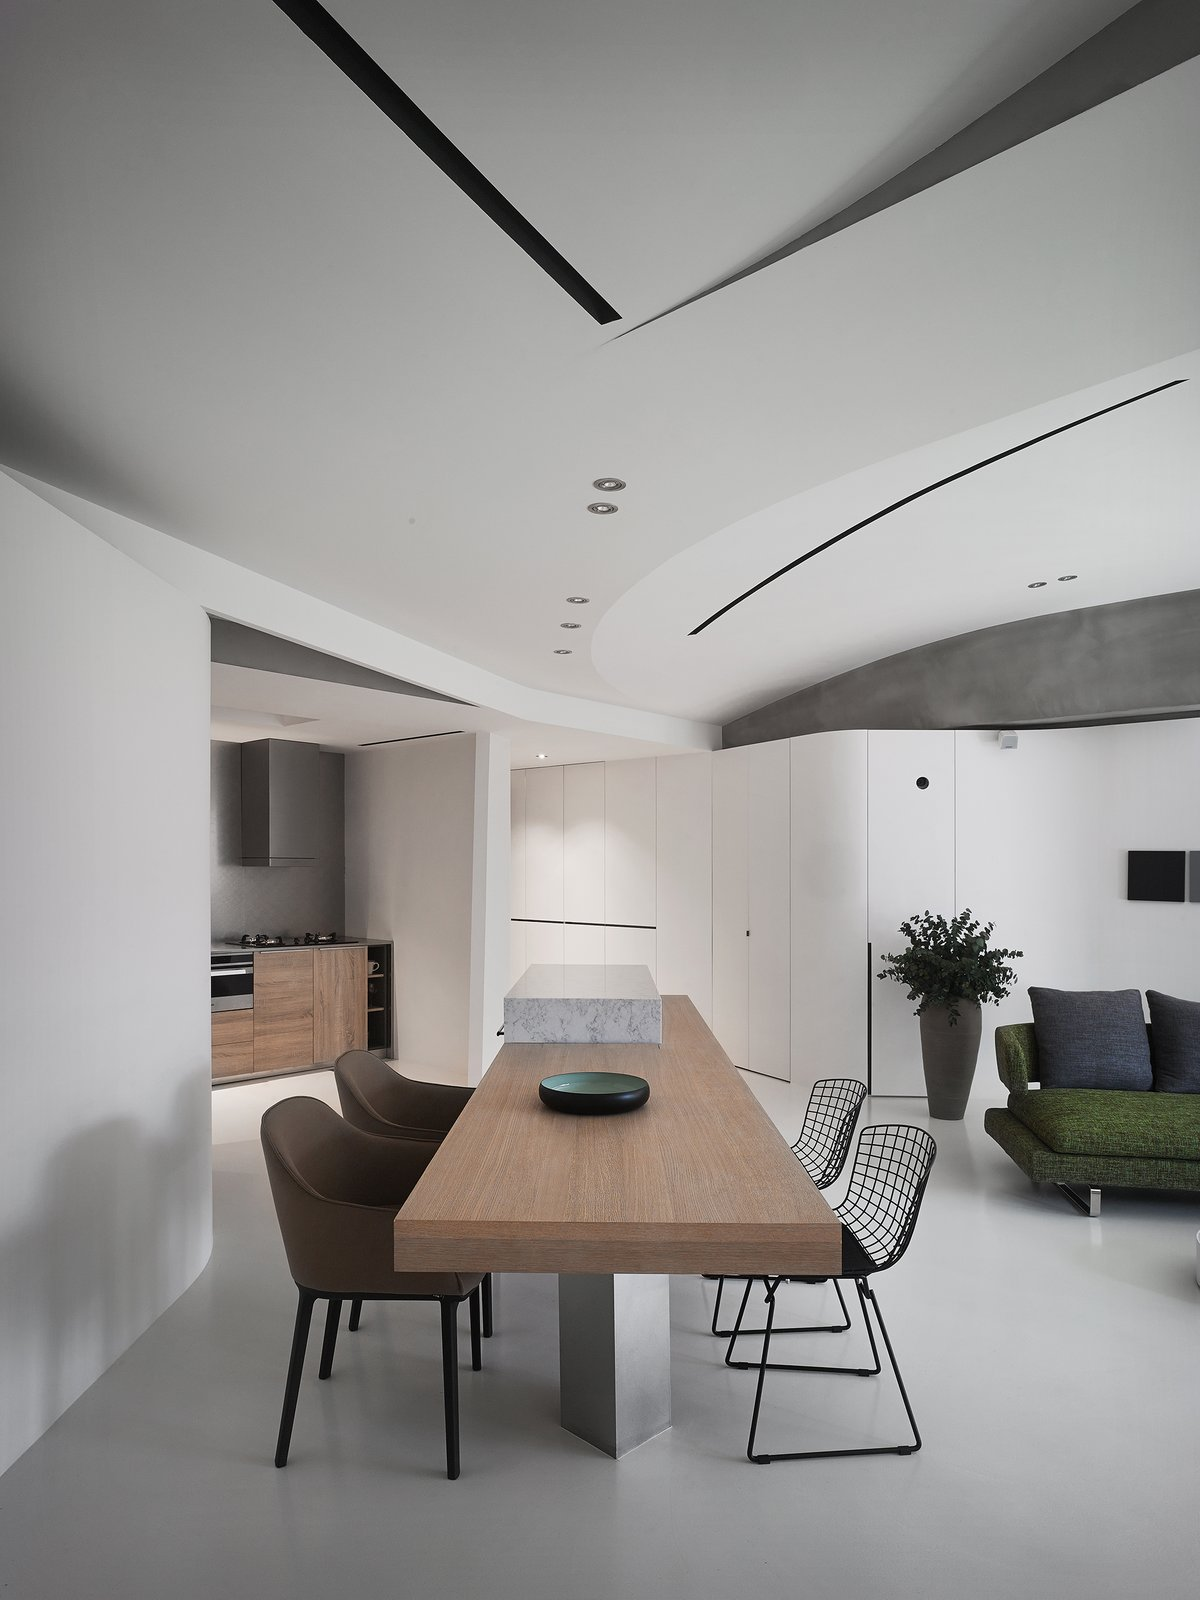 The living space is equipped with a home cinema and a mini bar to enhance the entertainment facilities for social activities.  Tagged: Dining Room, Chair, Ceiling Lighting, Table, Bar, and Concrete Floor.  Fluid House by shi-chieh lu